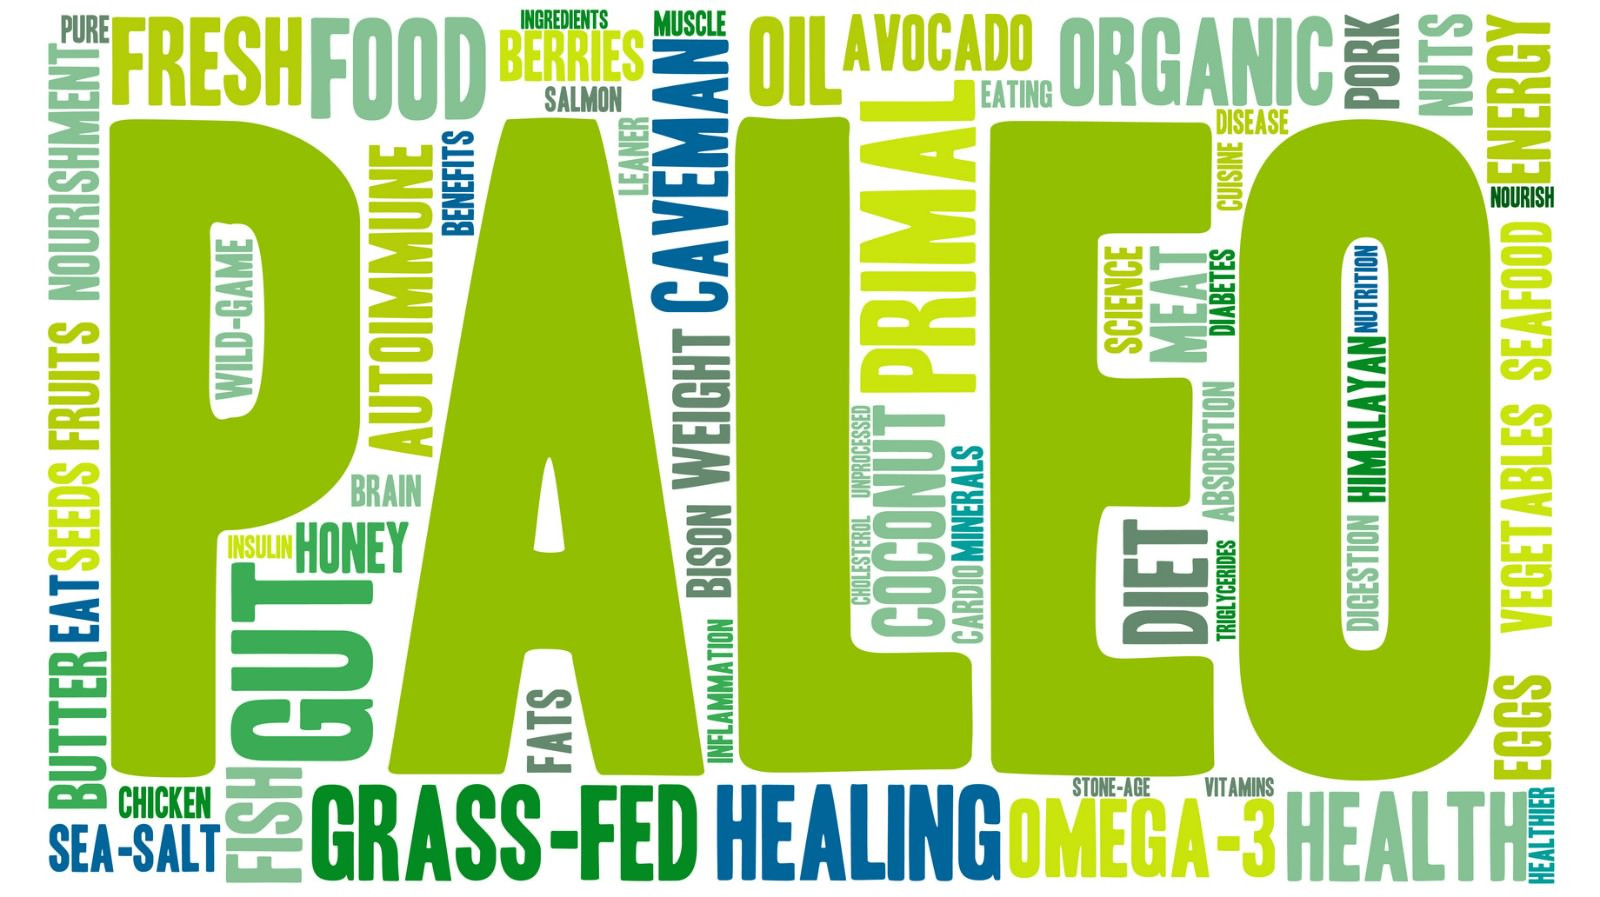 Why Paleo Diet Is Unhealthy  Why I Don t Eat Paleo or Primal The Healthy Home Economist